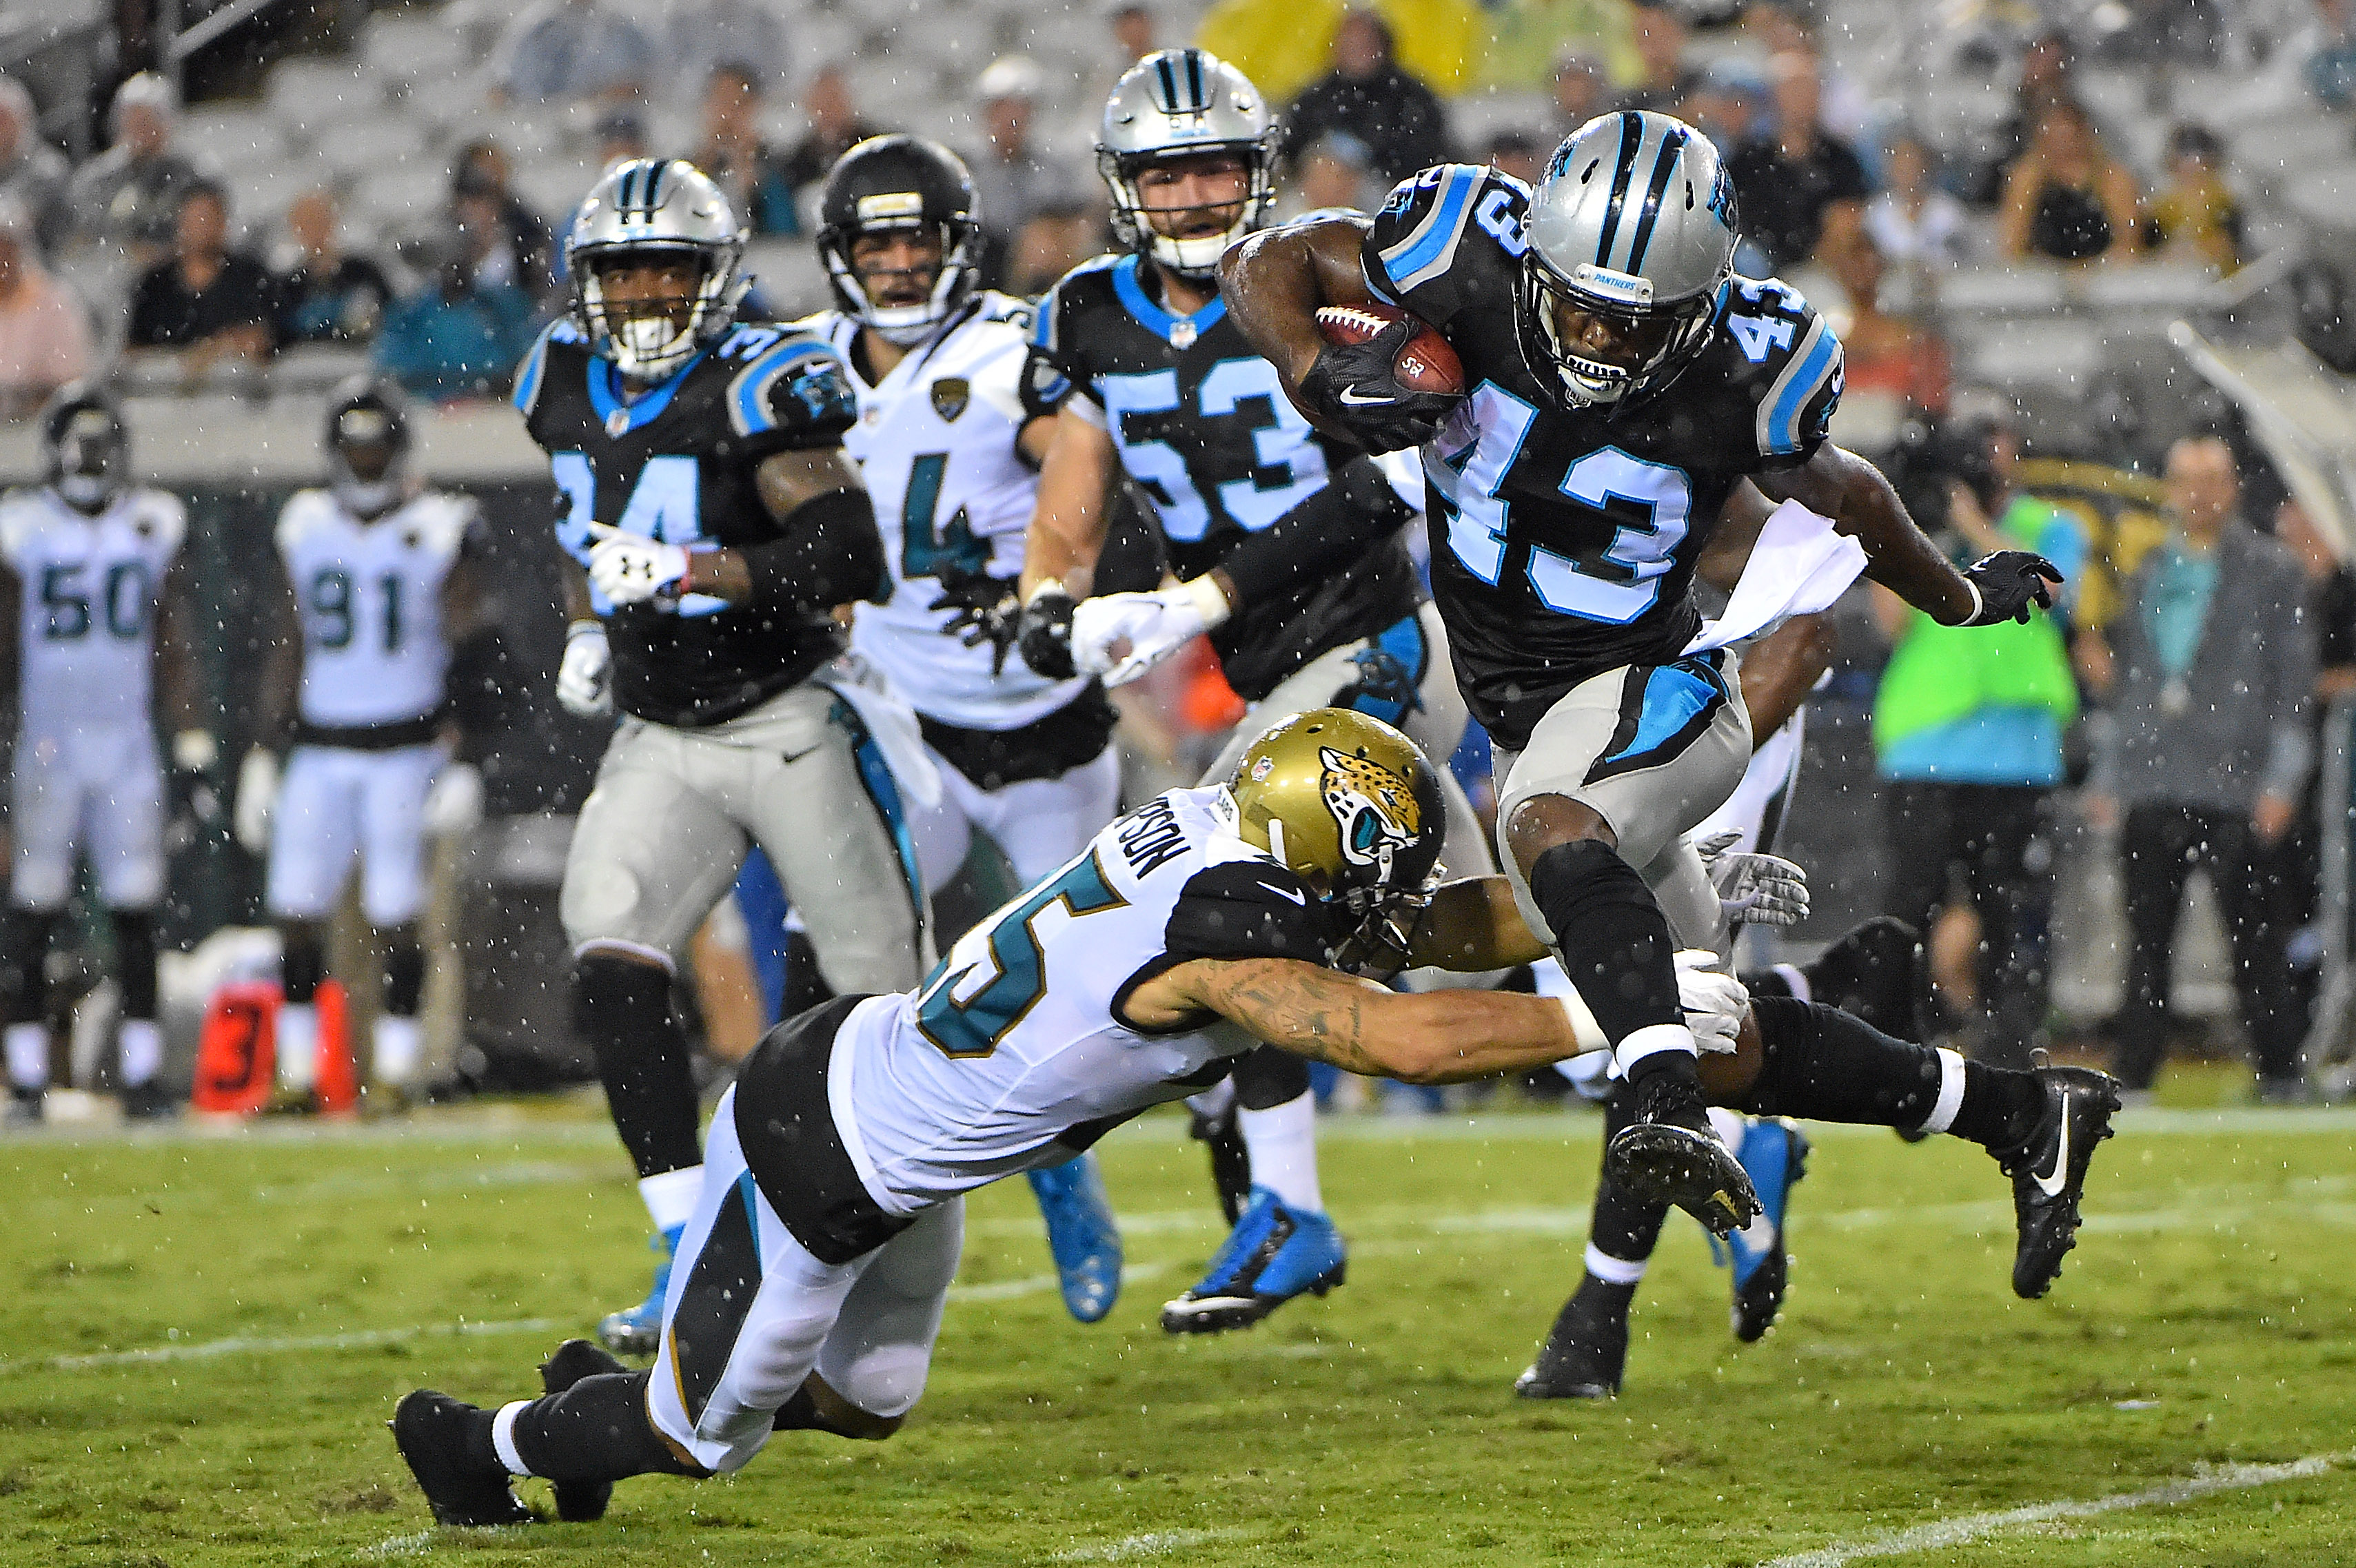 JACKSONVILLE, Fla. (FNN SPORTS) - The Jacksonville Jaguars struggled against the Carolina Panthers at EverBank Field Thursday. Photo: Jasen Vinlove/USA TODAY Sports.